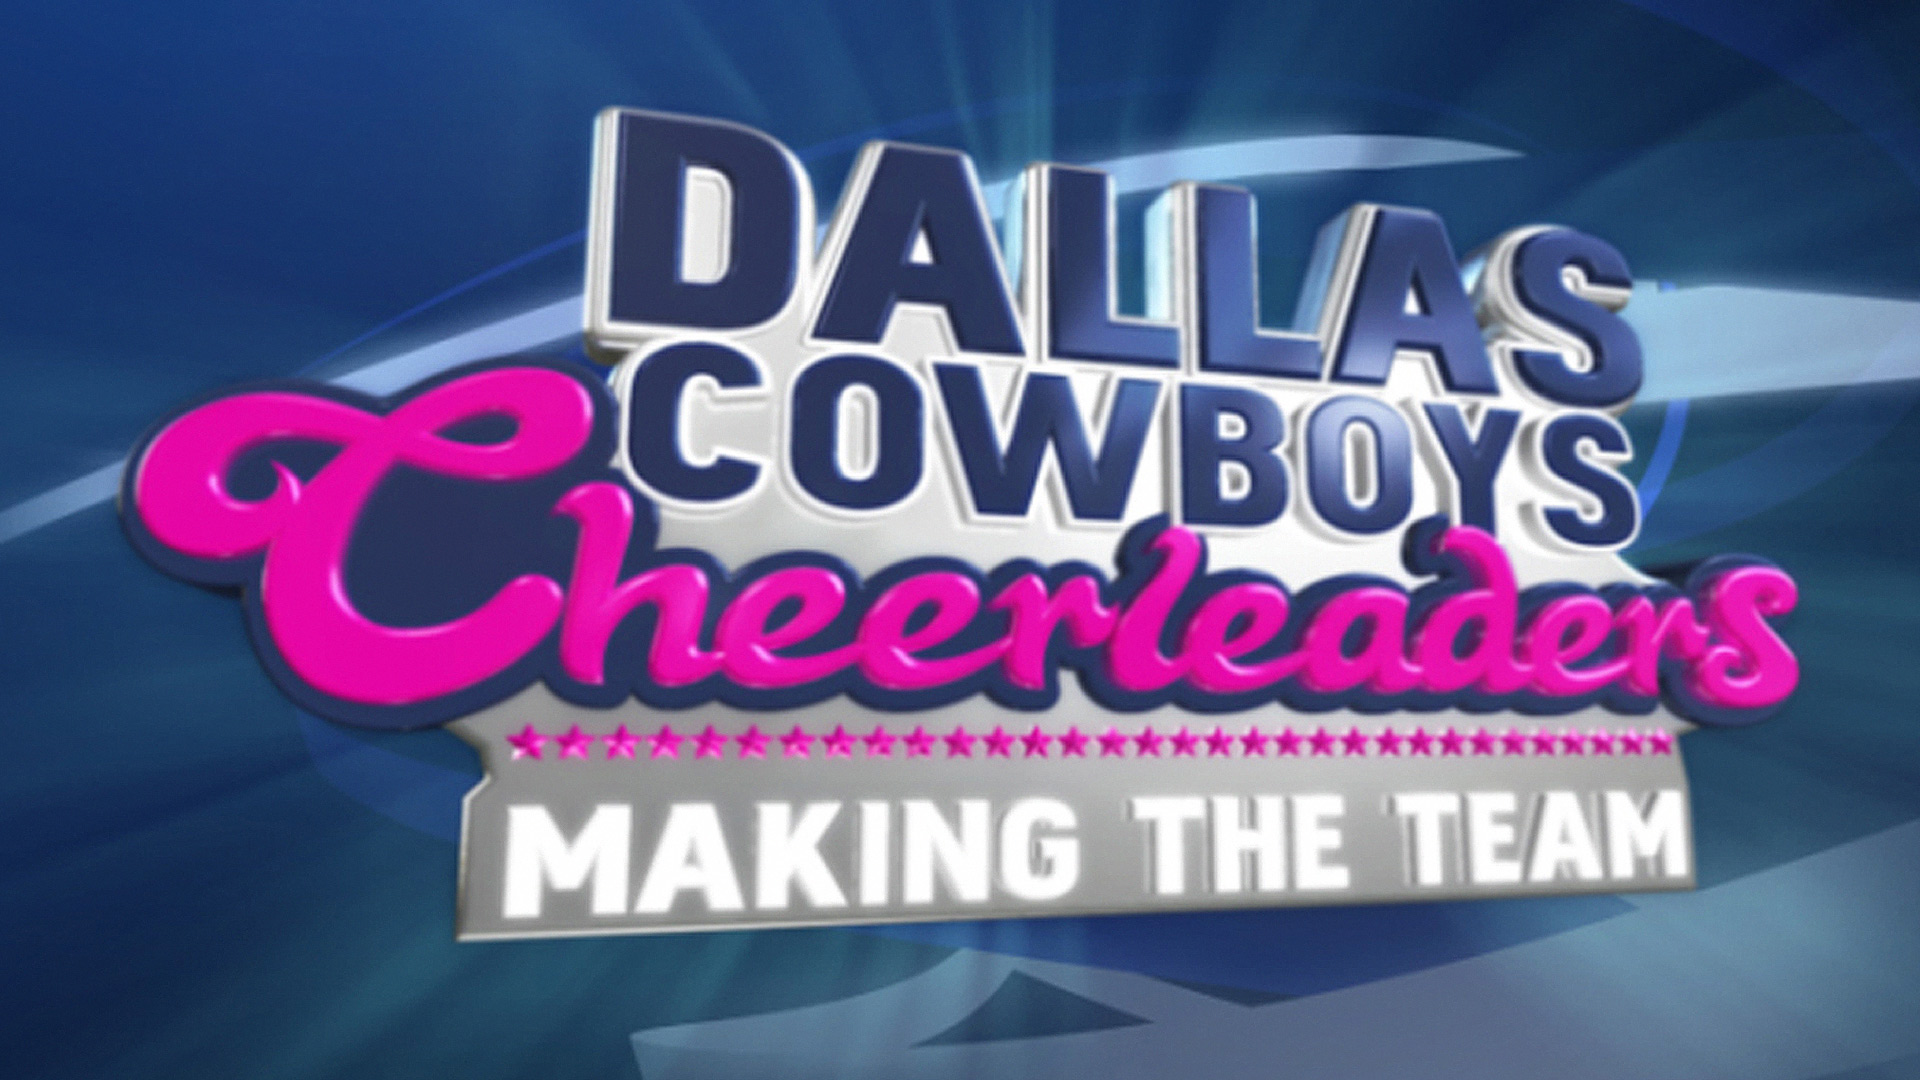 Dallas Cowboys Cheerleaders: Making the Team Season 1